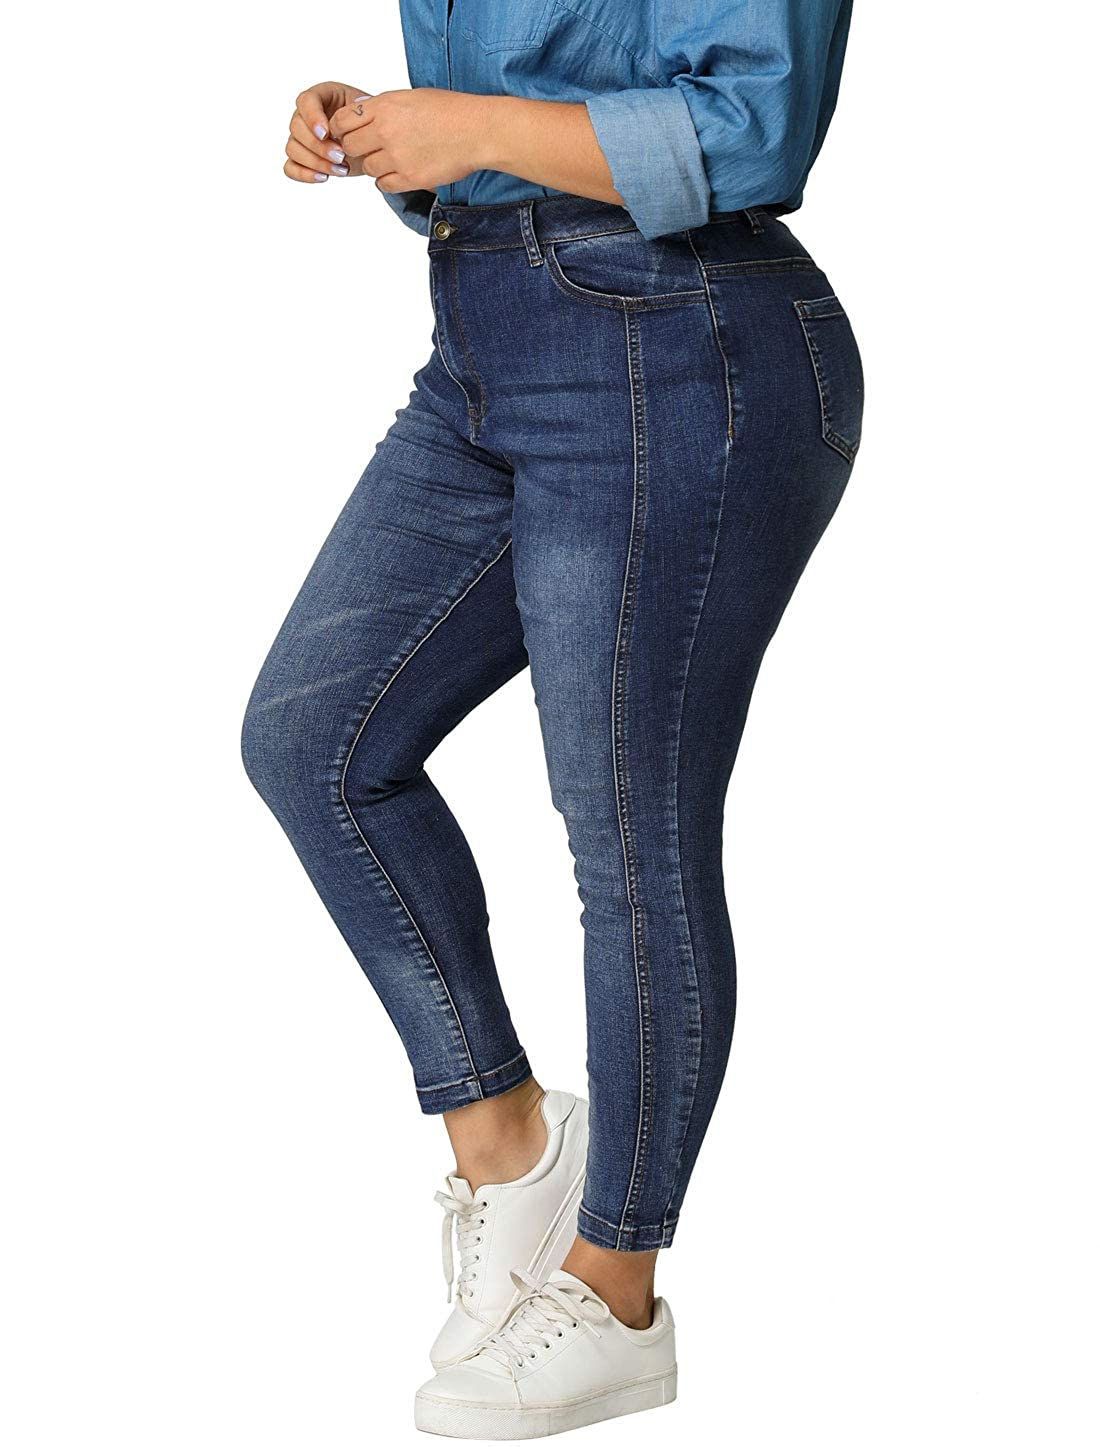 Agnes Orinda Womens Plus Size Stretch Mid Rise Washed Skinny Jeans